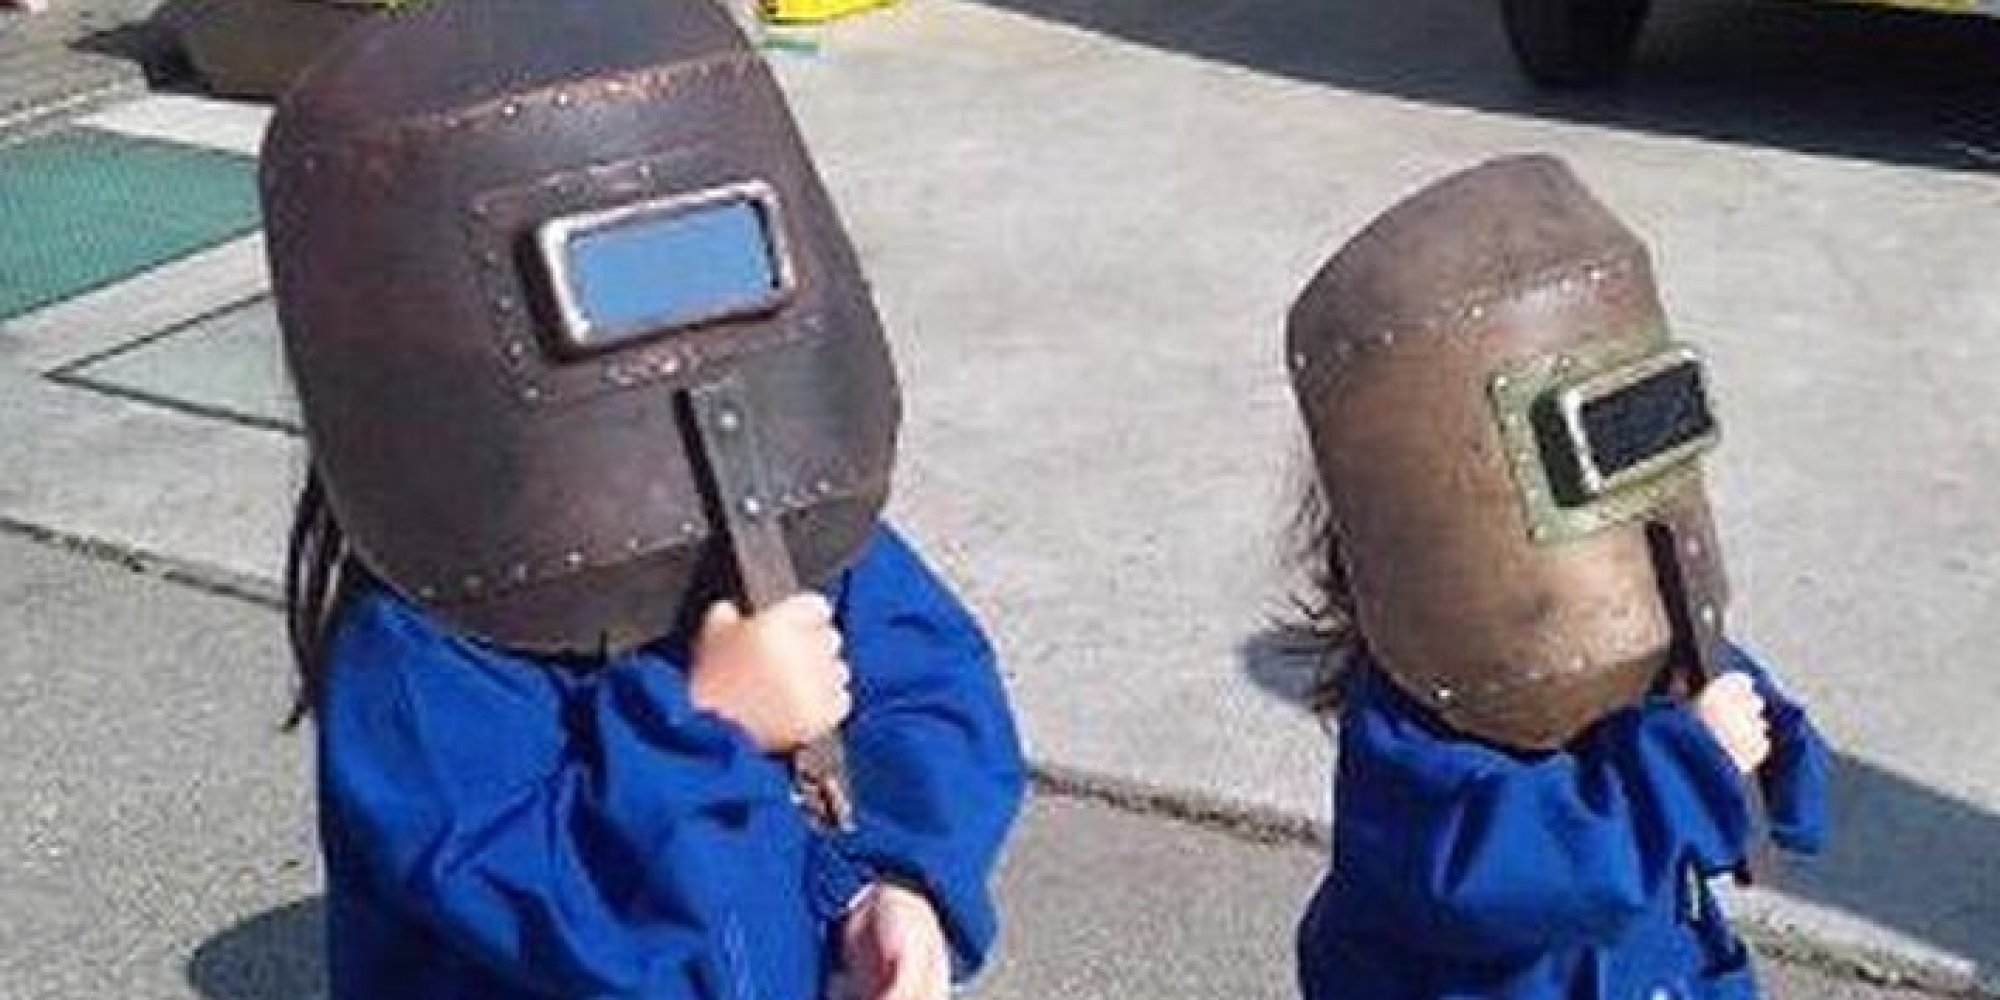 Solar Eclipse 2015 Pictures Reveal Welding Masks And Cardboard ...